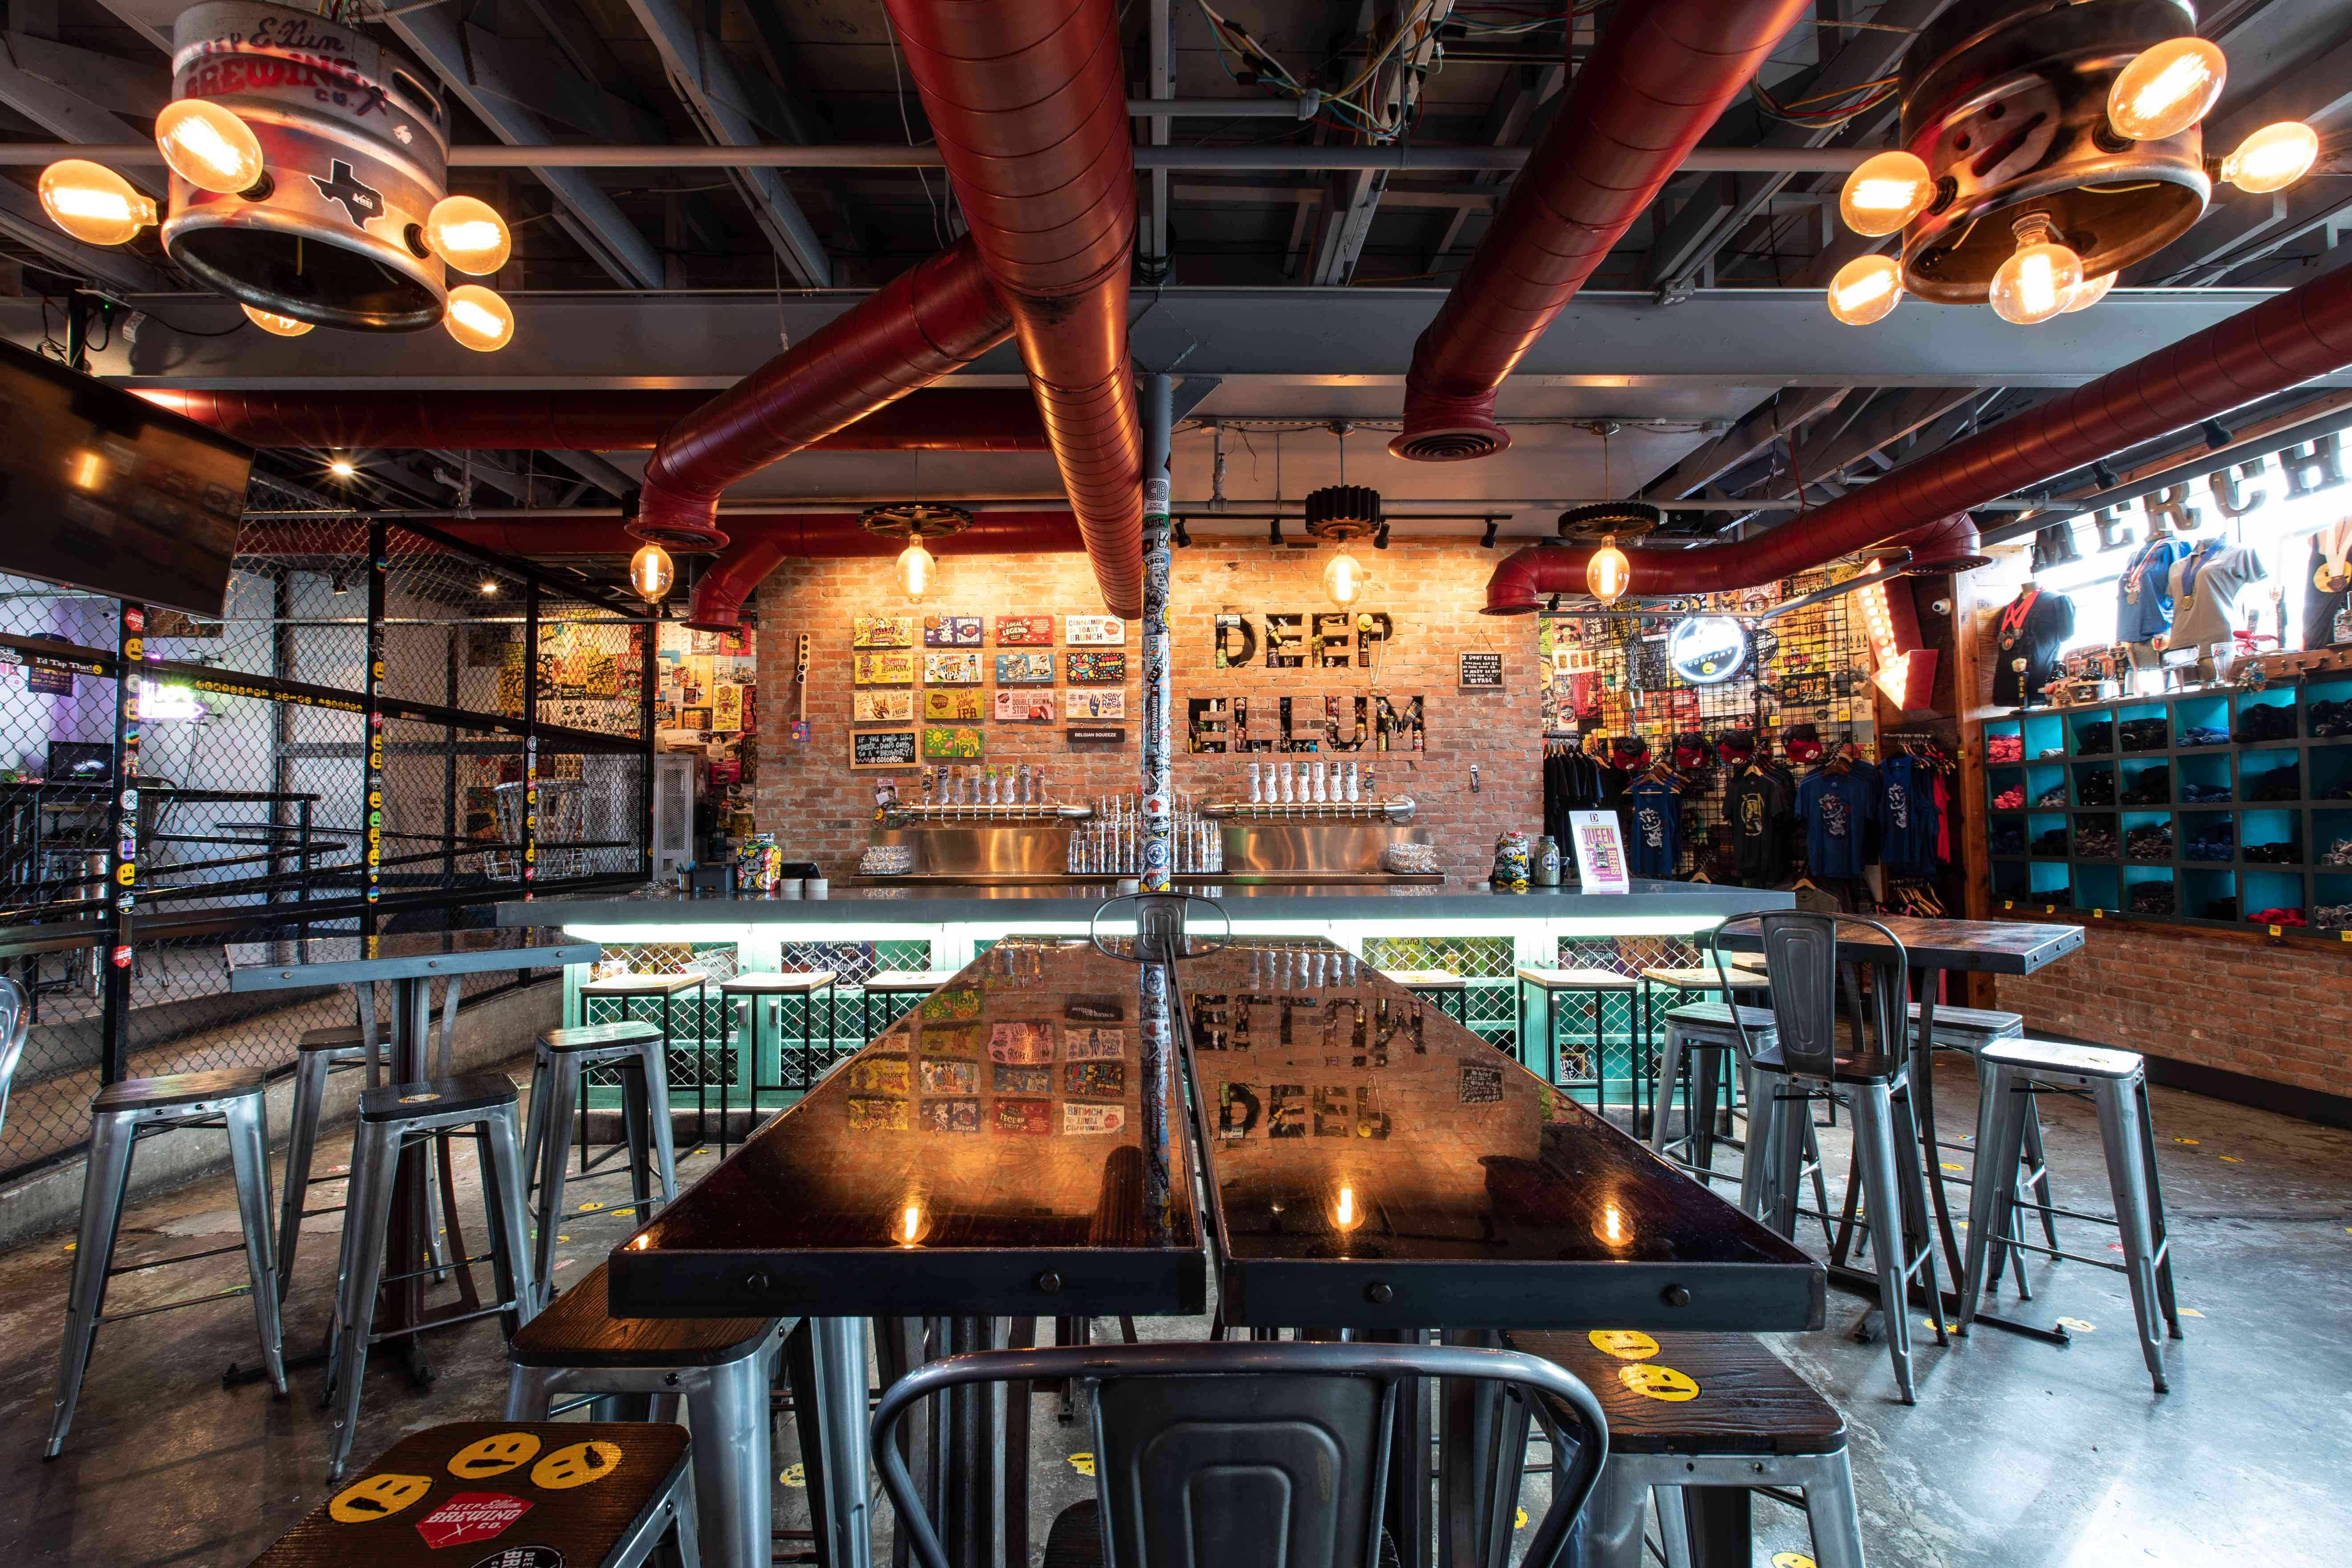 Interior of Deep Ellum Brewing company tap room with no one in it